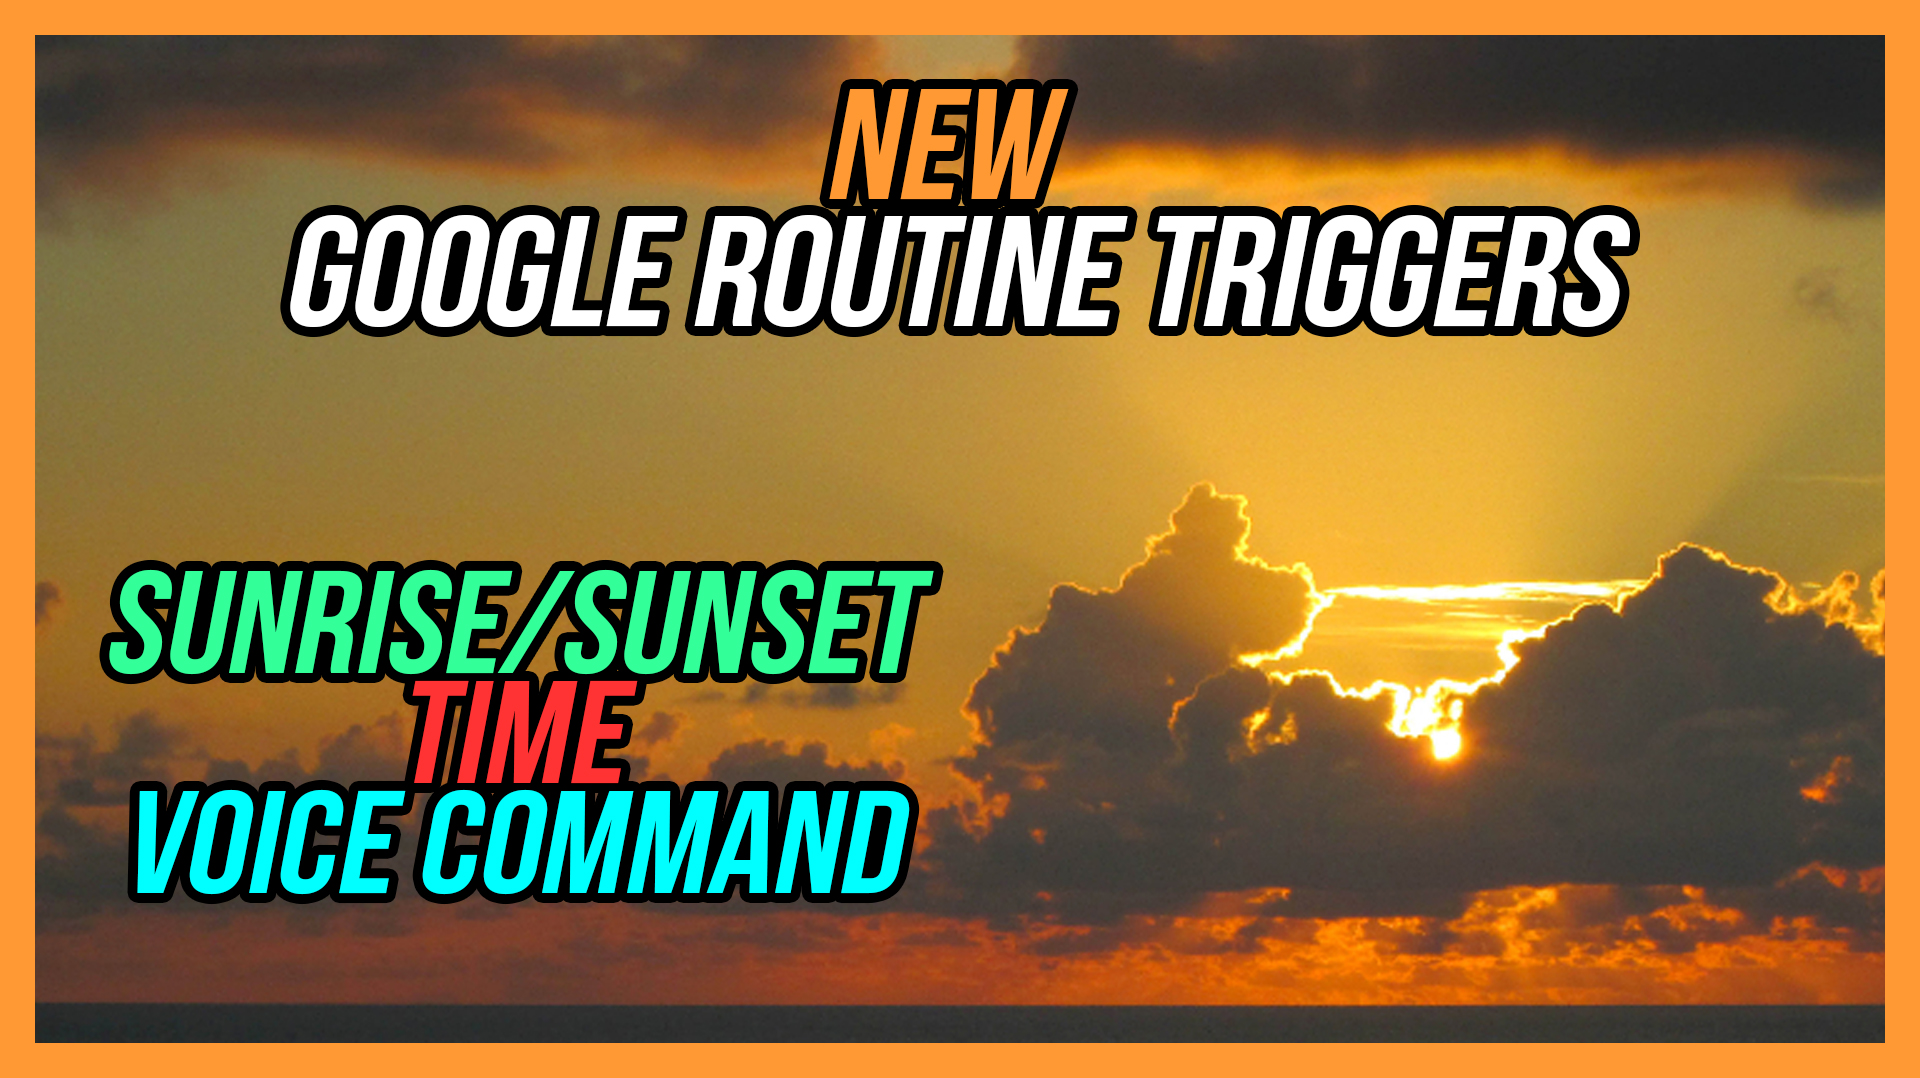 How to Setup Google Assistant Routine Trigger using Sunrise/Sunset, Time and Voice Command on the Google Home App